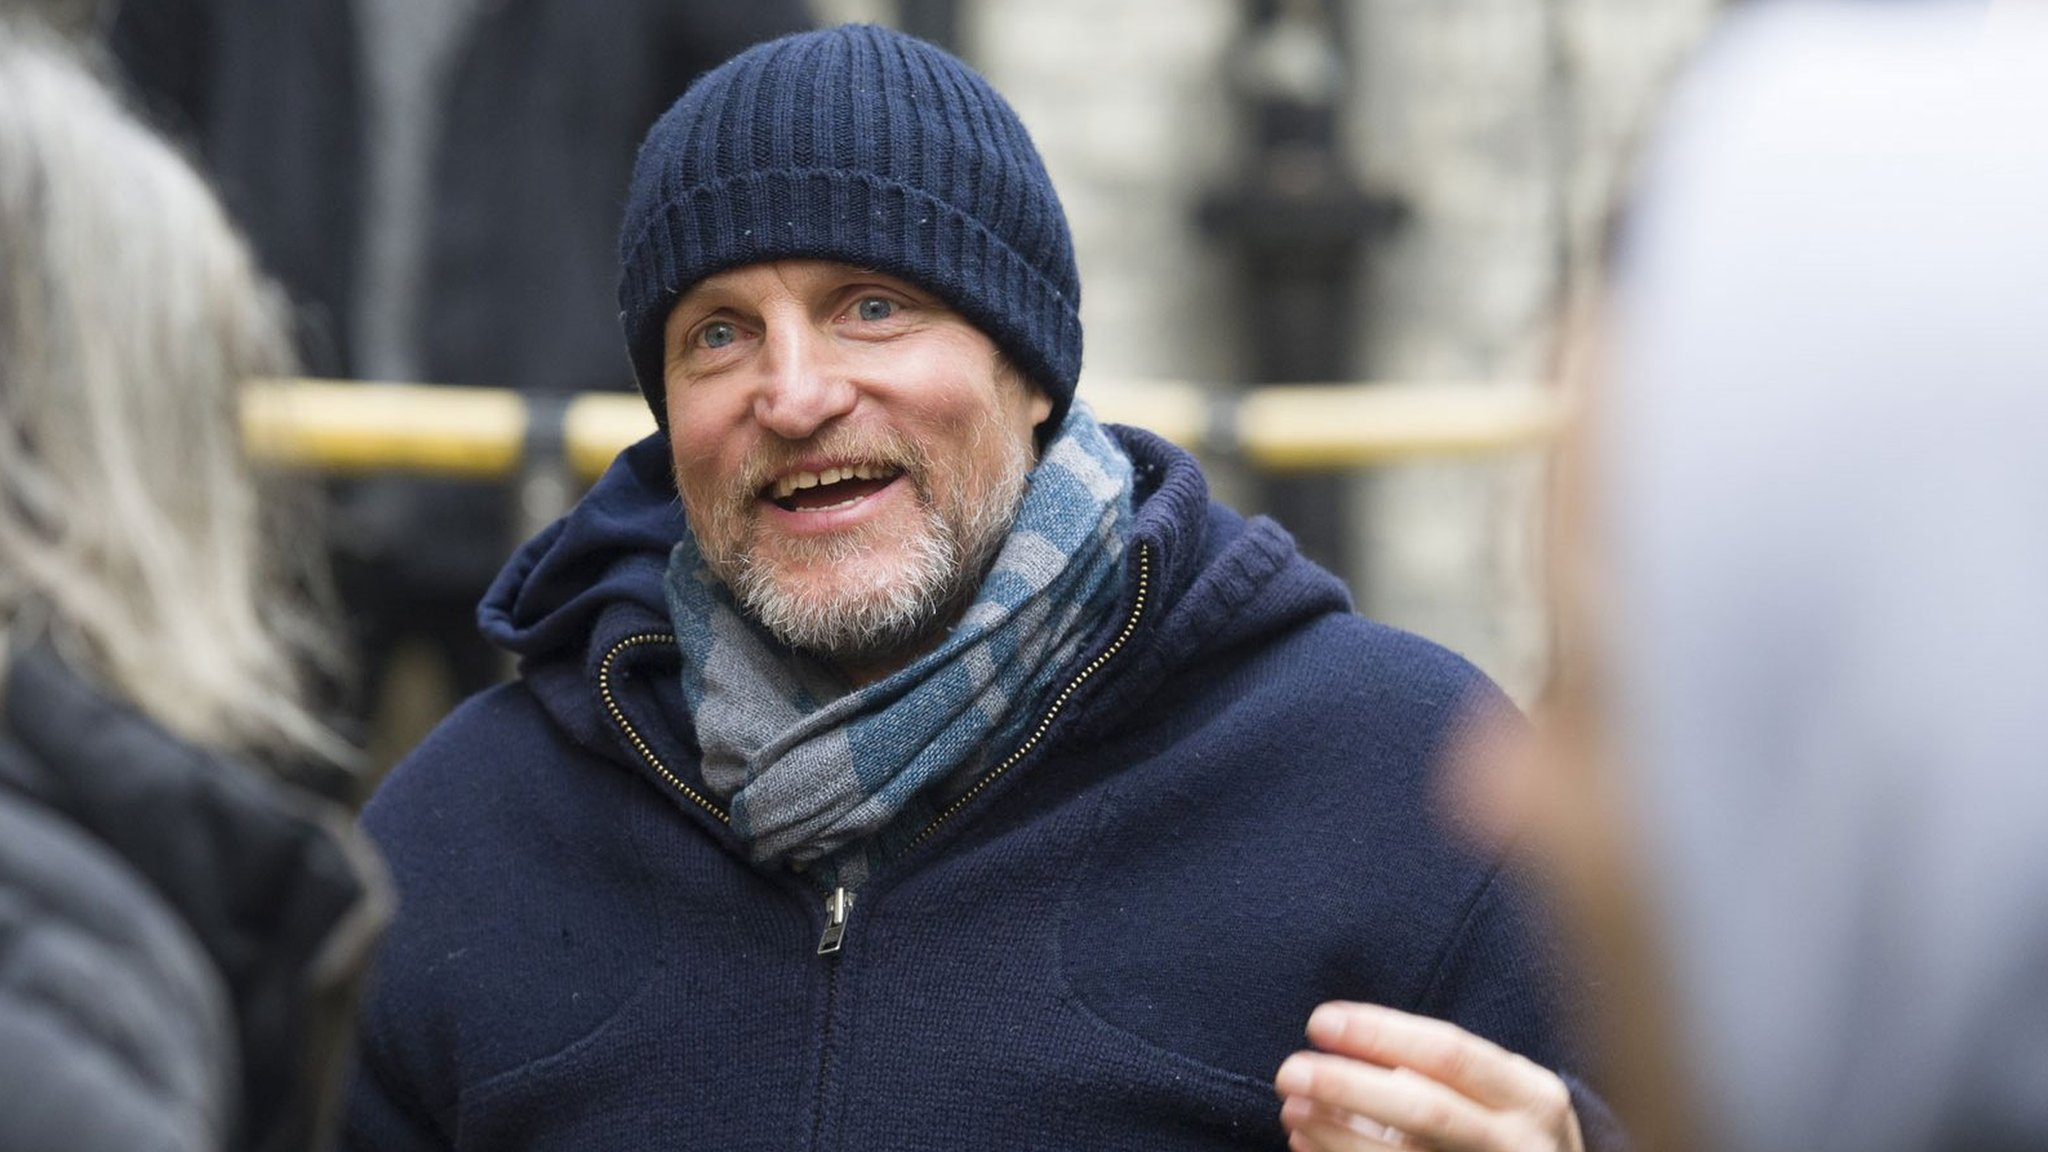 Woody Harrelson shoots live movie hours after 'WW2 bomb' discovery